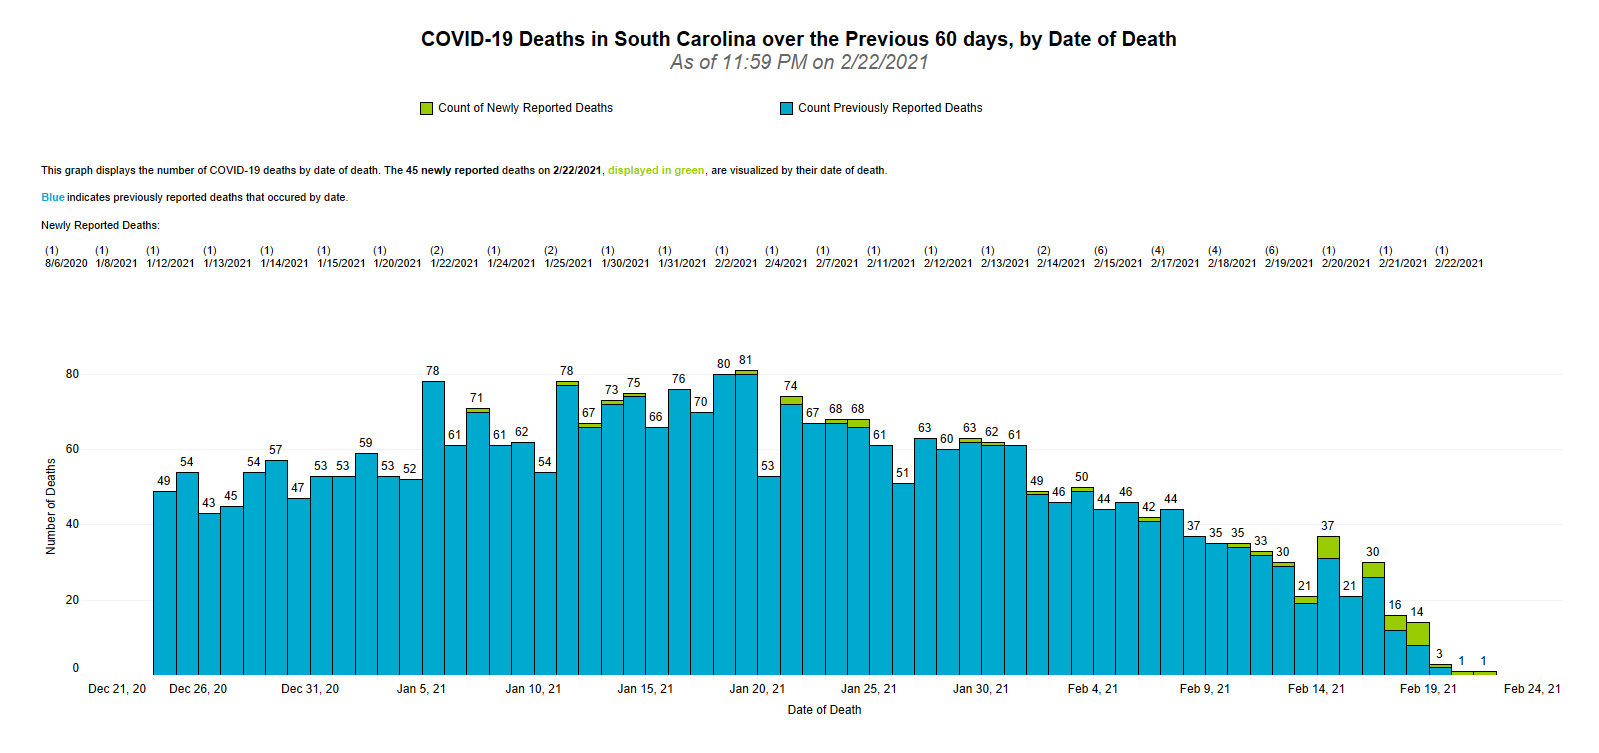 Graphic of COVID-19 Deaths by Date of Death - 60 Days 02.24.2021